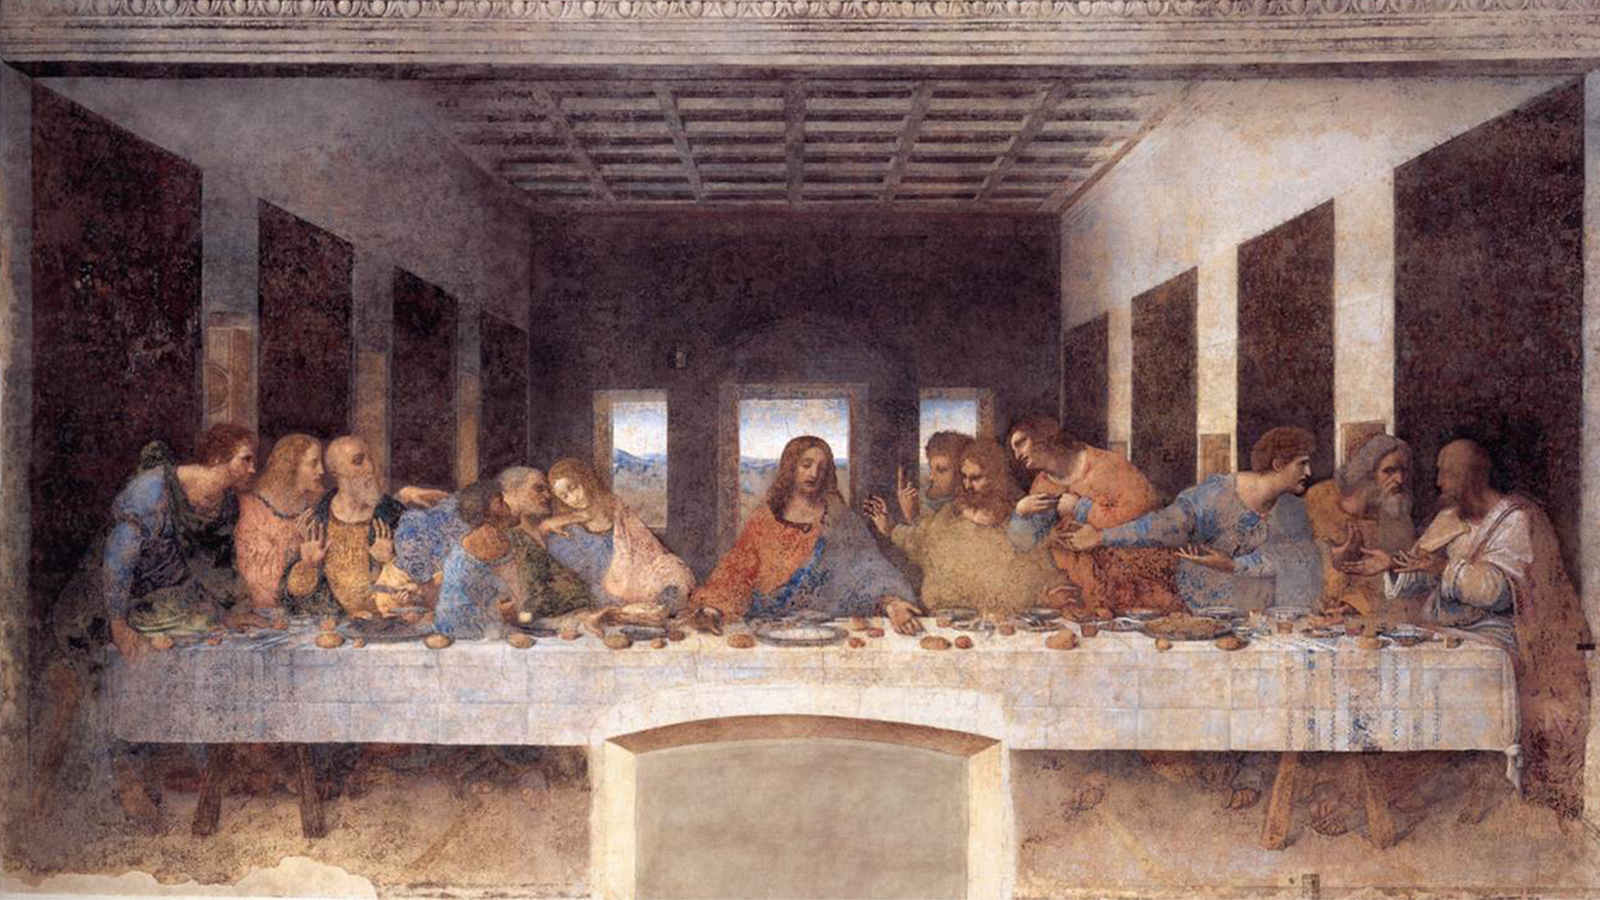 The Last Supper': The Masterpiece Leonardo Didn't Want to Paint   HowStuffWorks